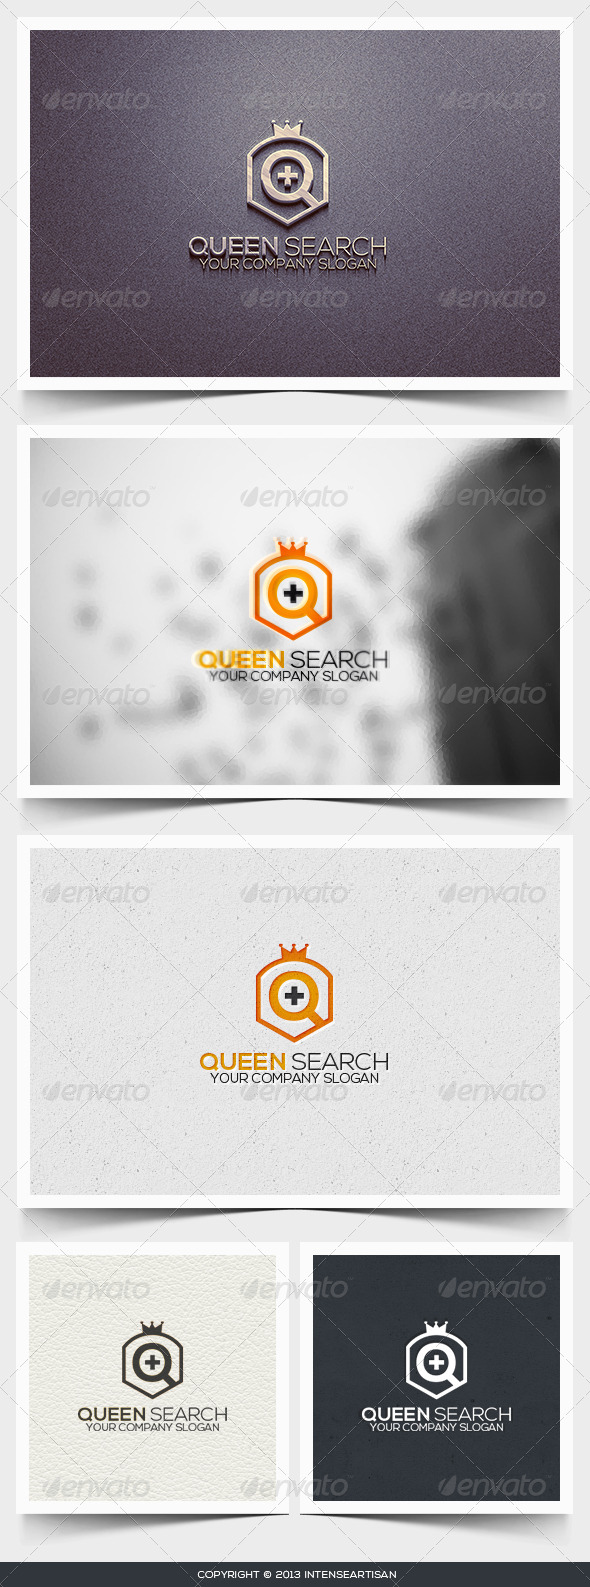 Queen Search Logo Template - Objects Logo Templates